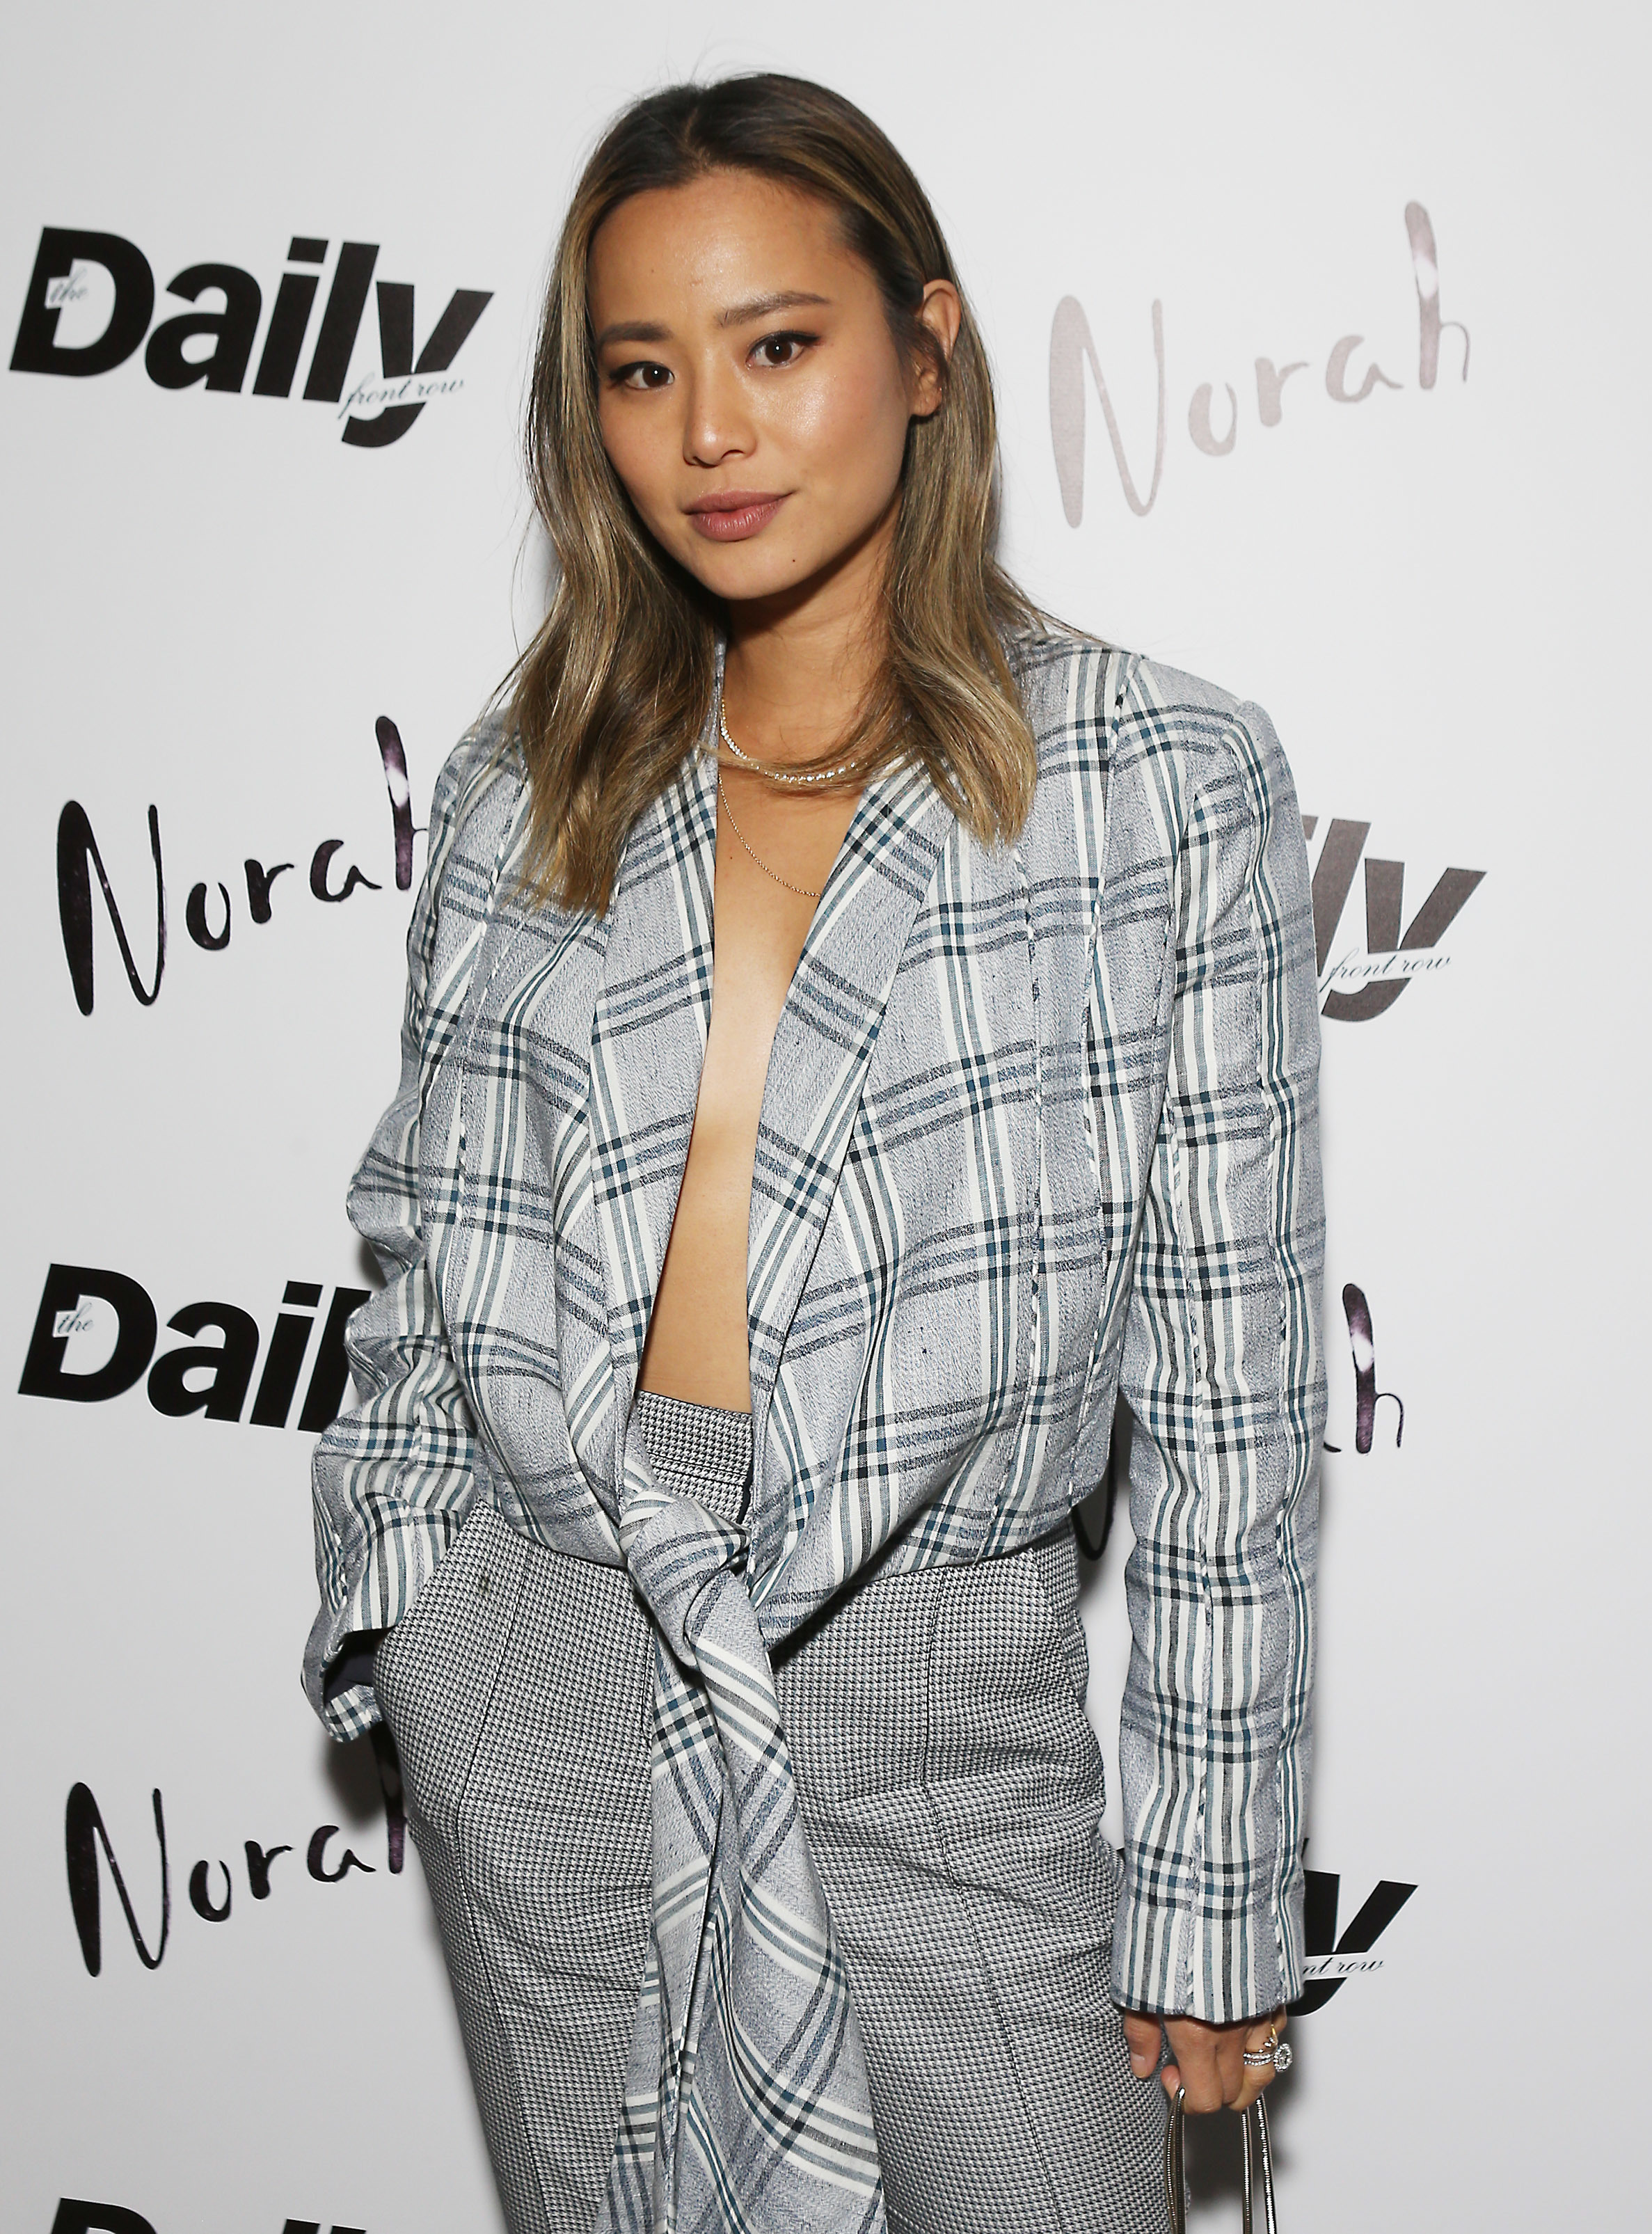 Jamie Chung attends Norah's 3rd Anniversary party with Casamigos tequila in West Hollywood on March 28, 2019.